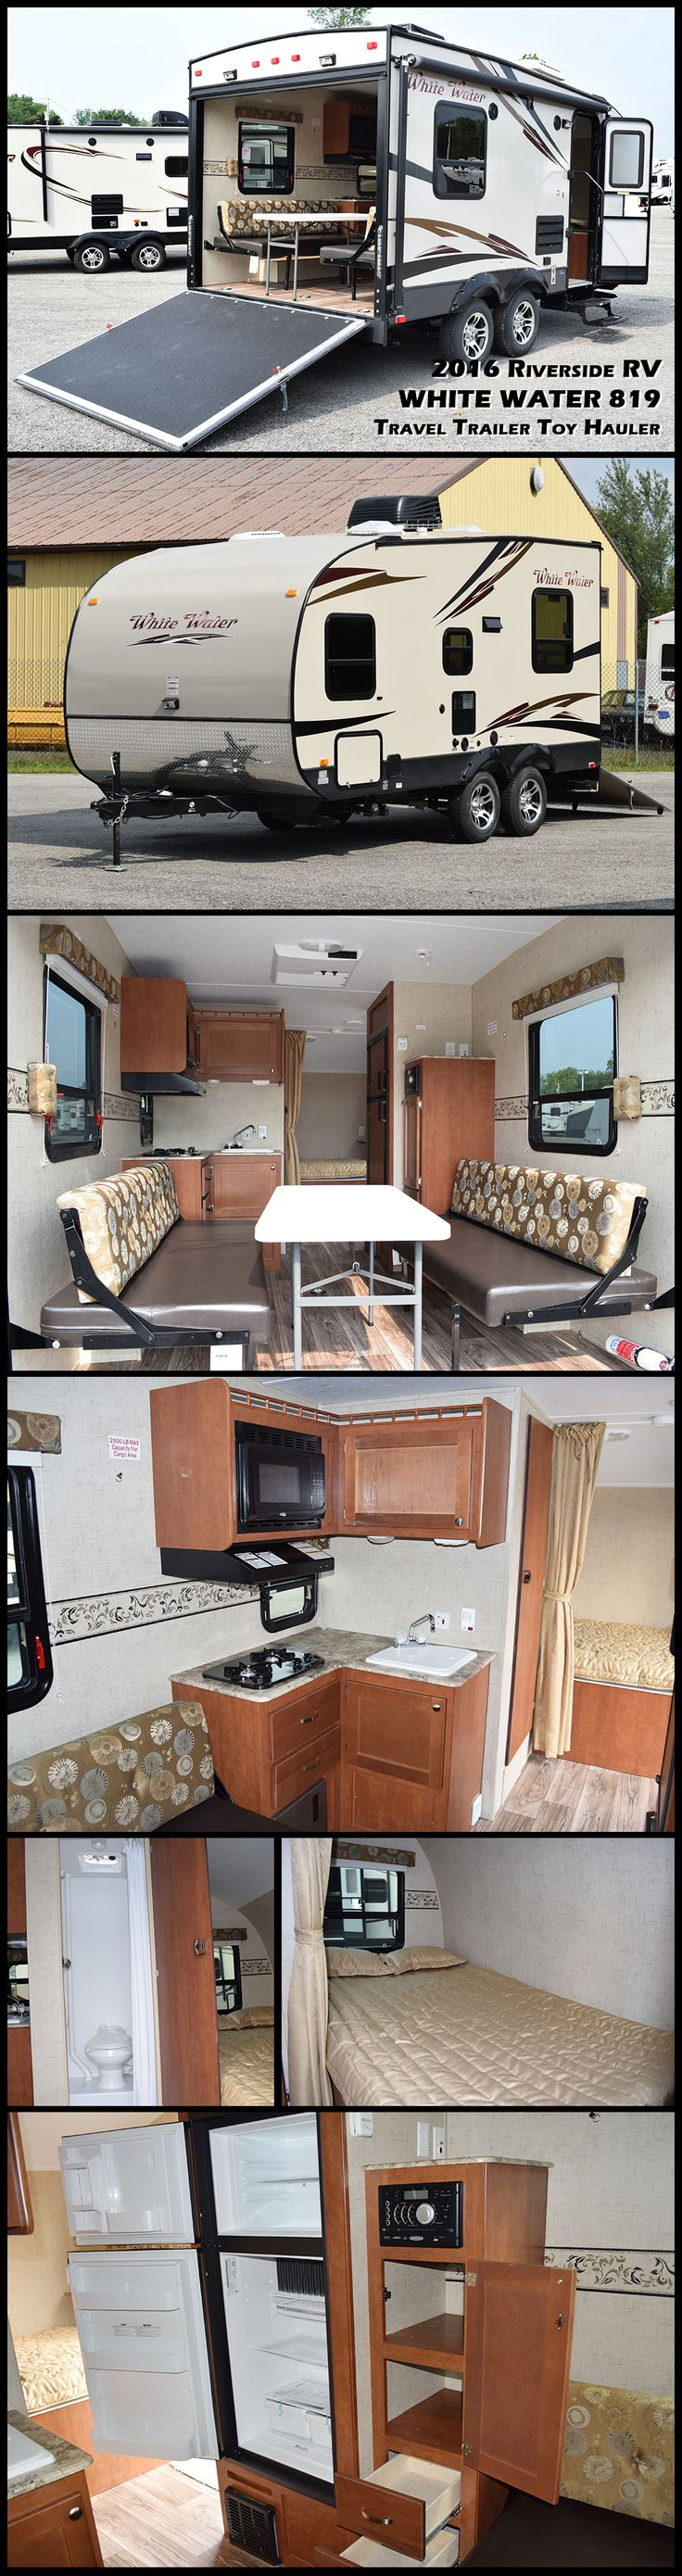 53 best toy haulers images on pinterest travel trailers fifth